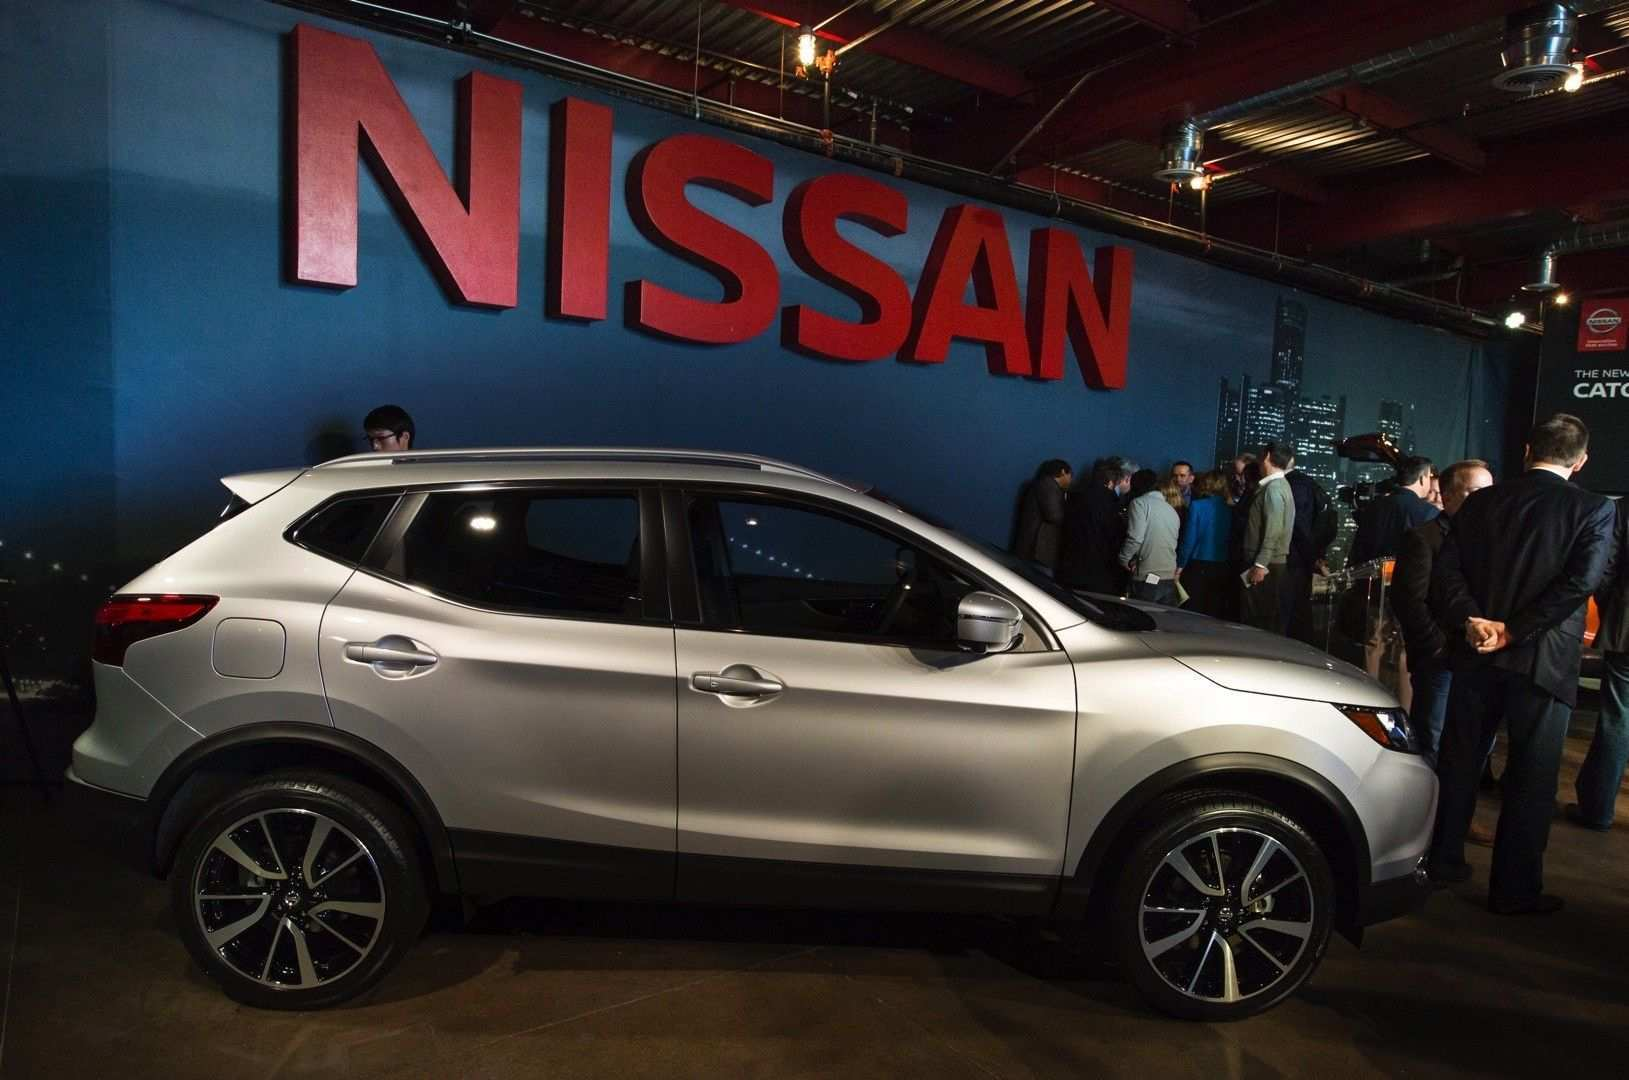 94 Great Nissan Rogue 2020 Canada Reviews by Nissan Rogue 2020 Canada